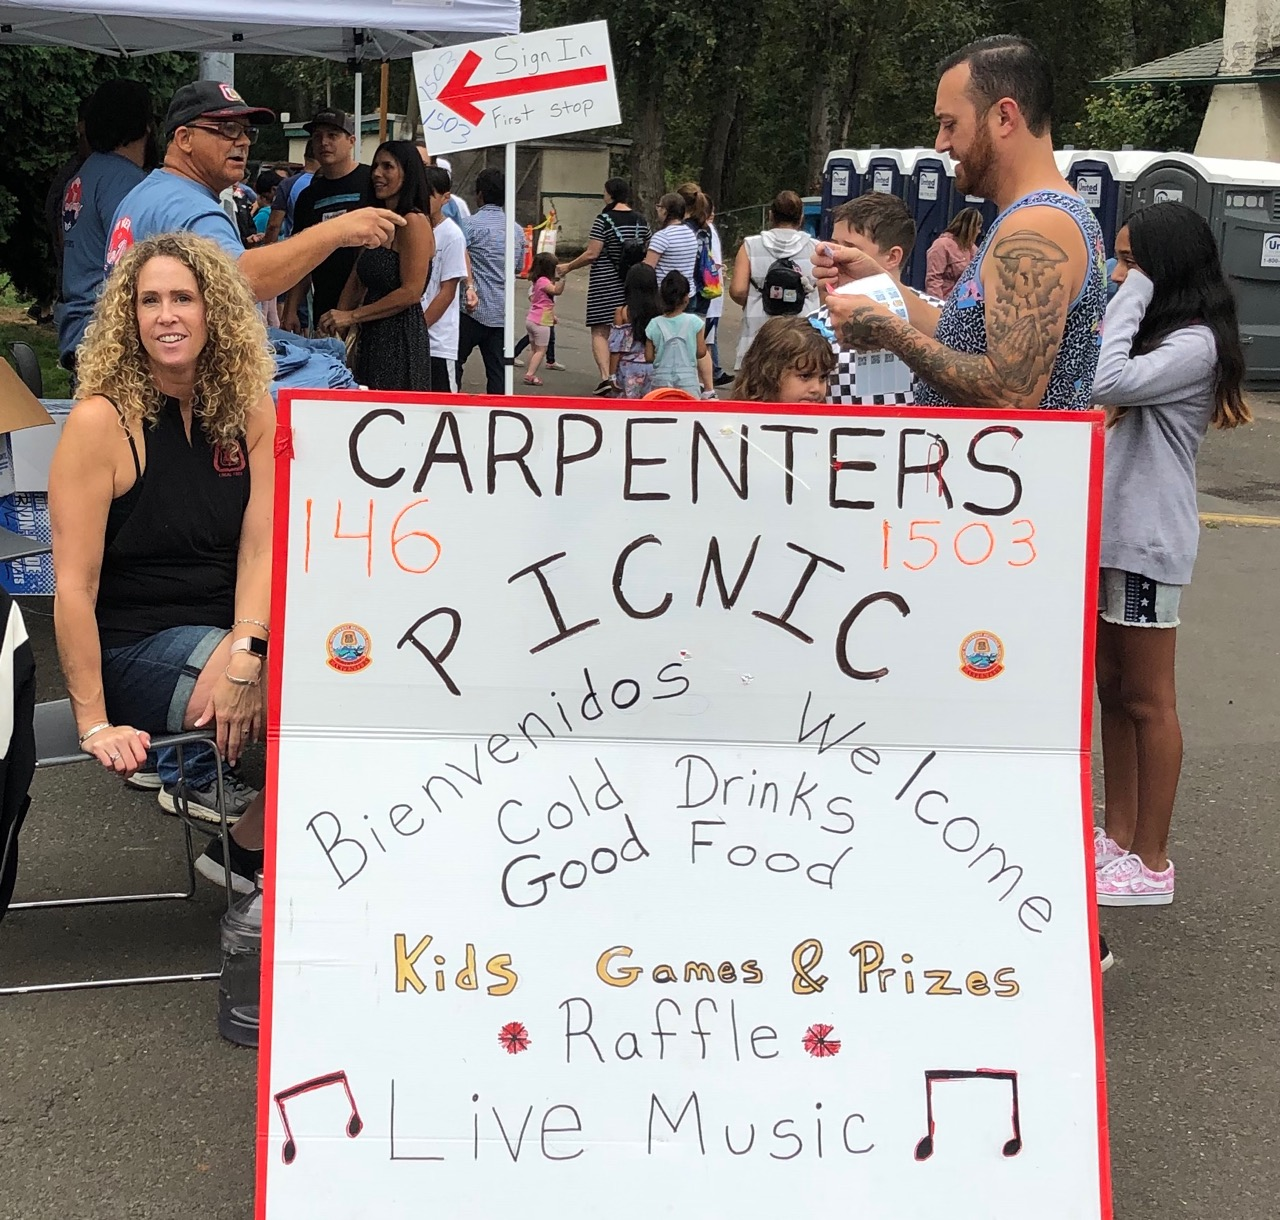 Carpenter picnic welcome sign